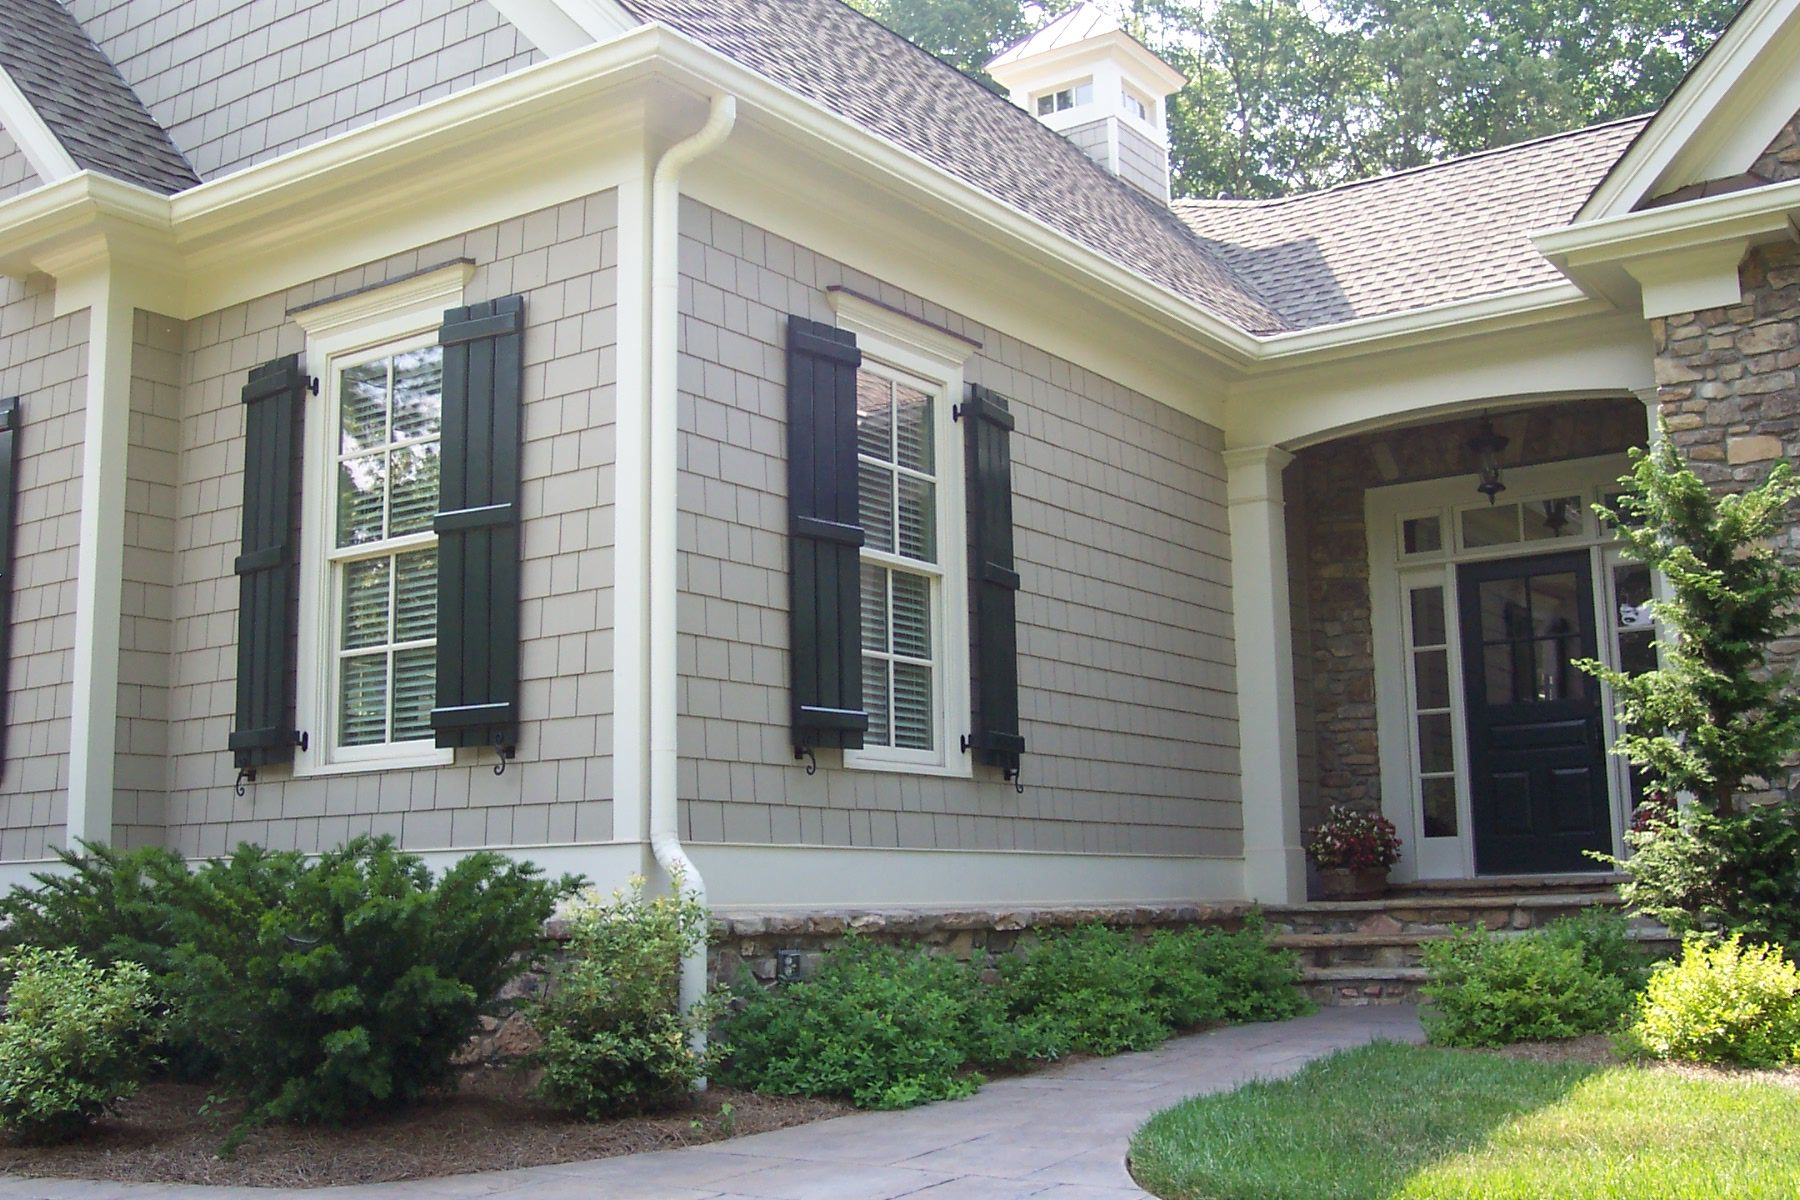 Awesome Board And Batten Siding For Your Home Decor Ideas